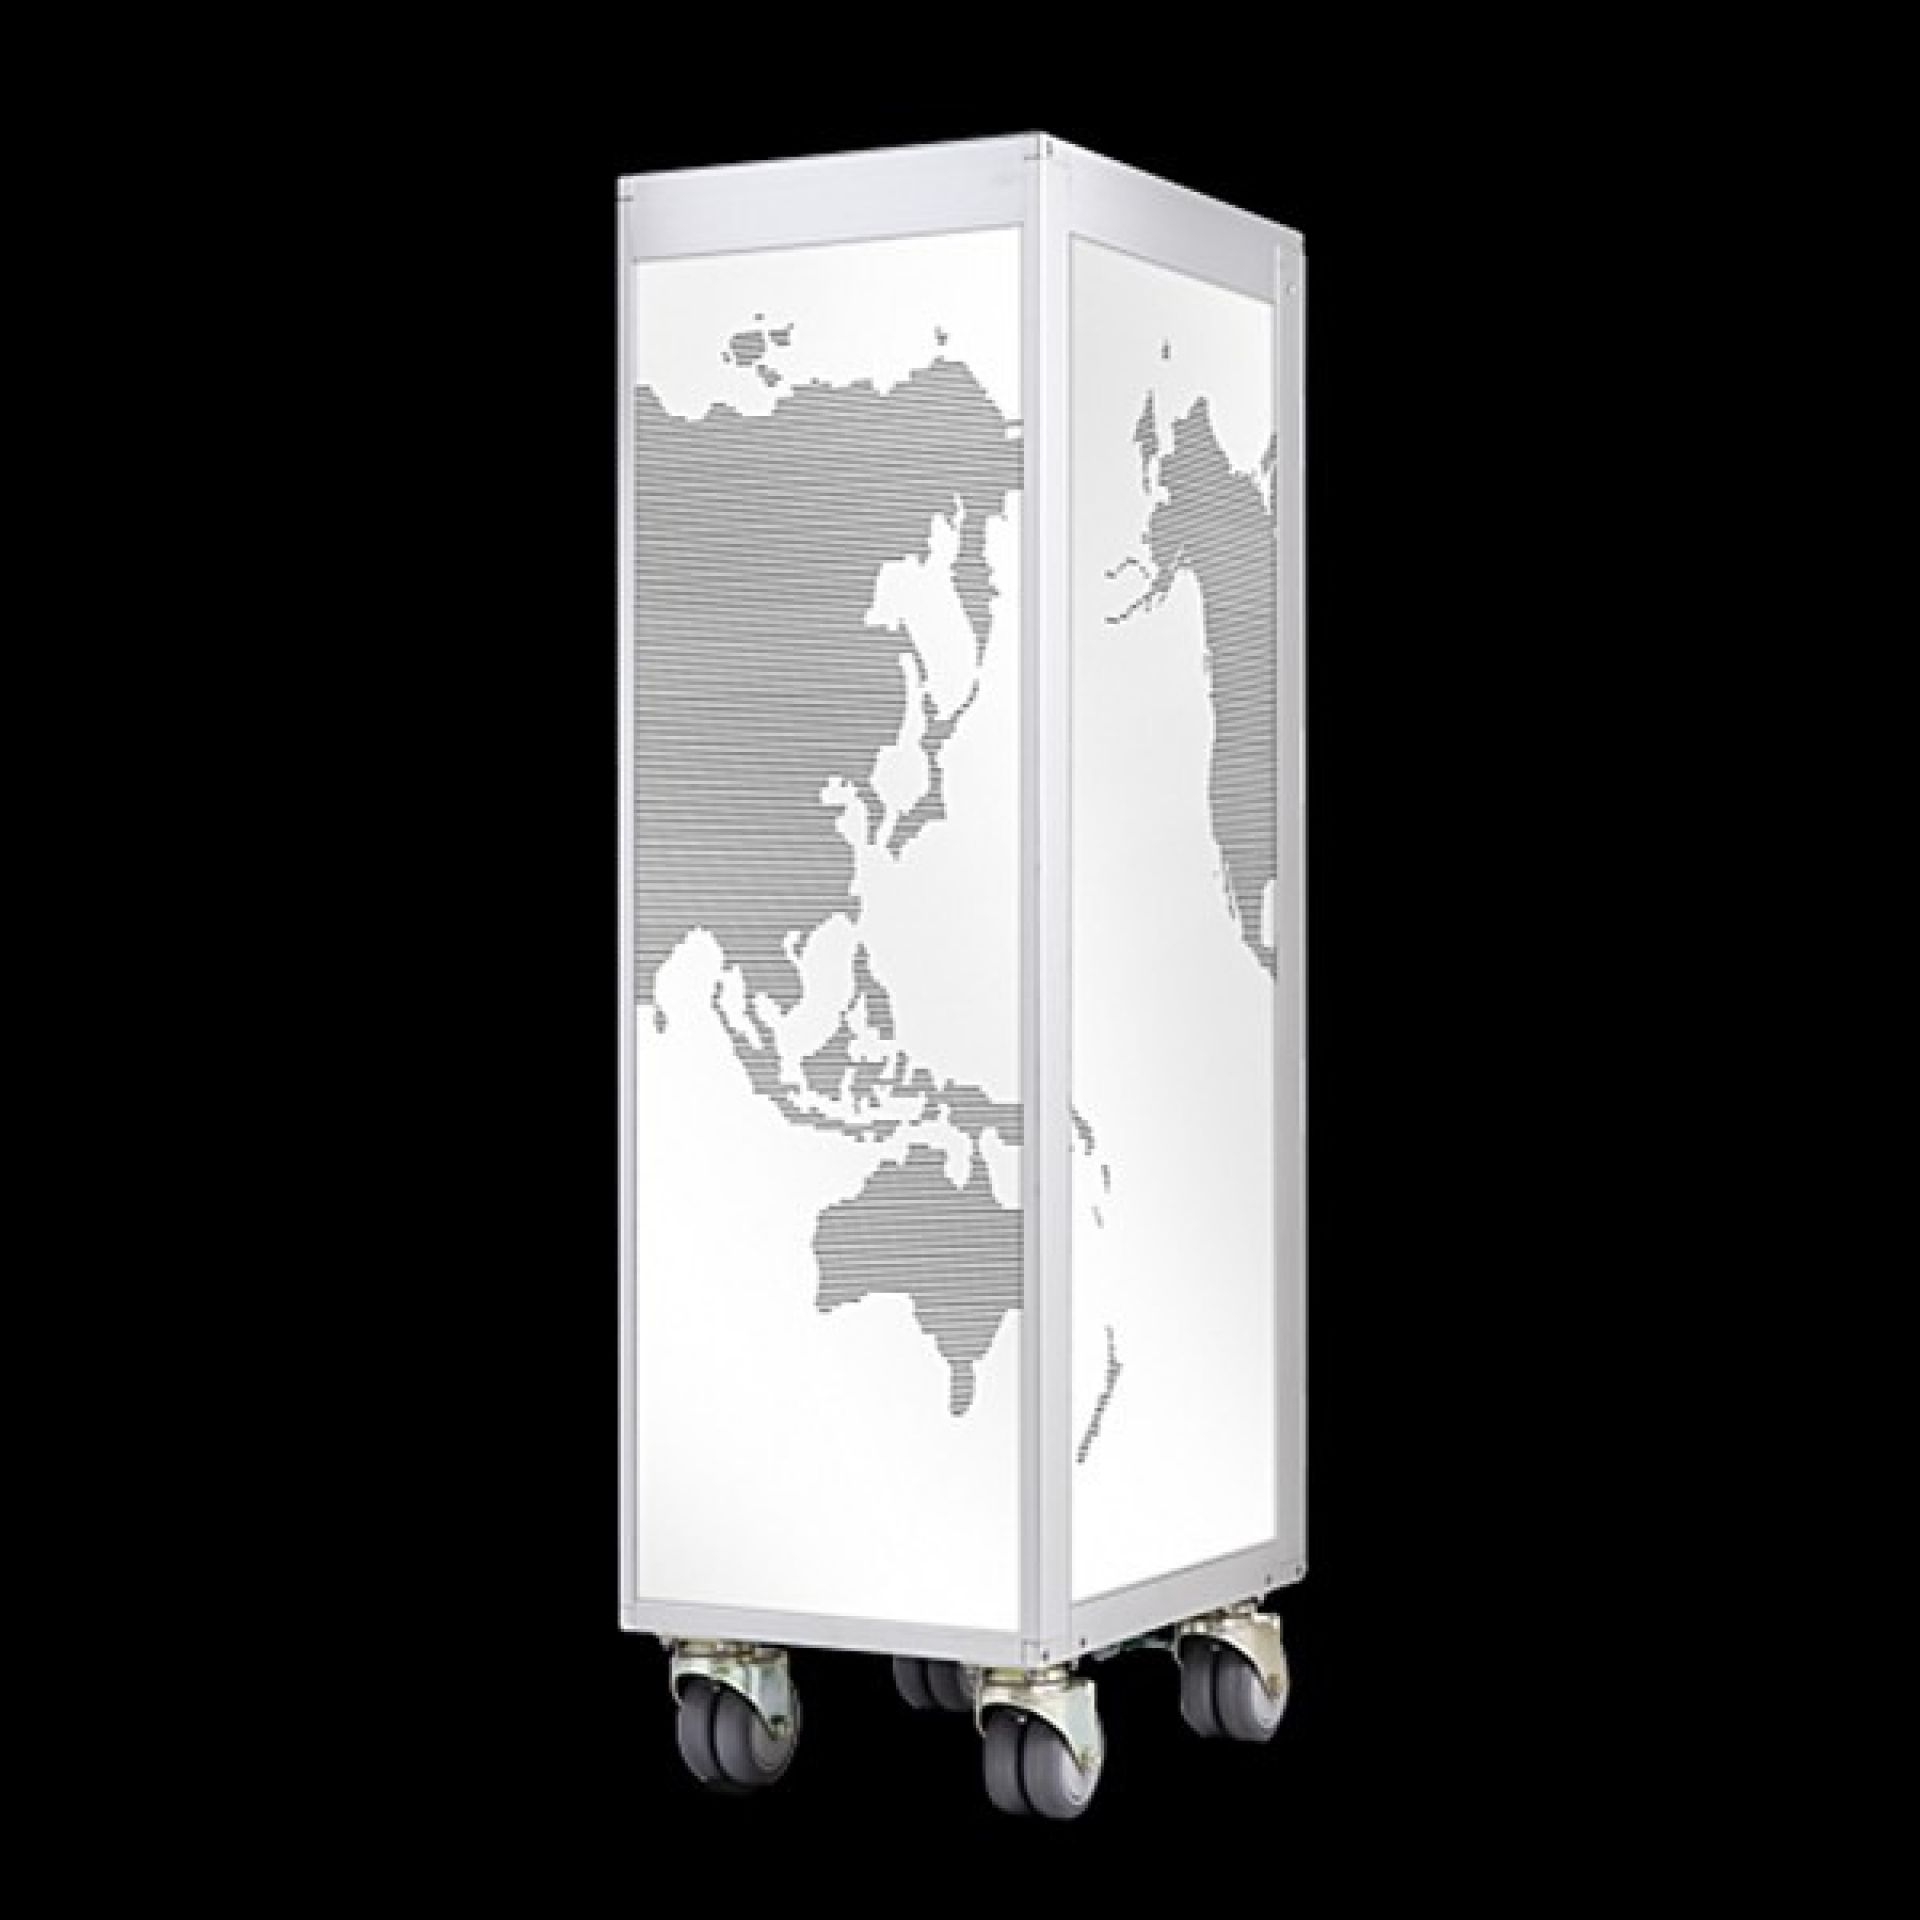 UNIQUE DESIGN AIRLINER BAR CART WITH WORLD MAP ON BLACK OR WHITE BACKGROUND